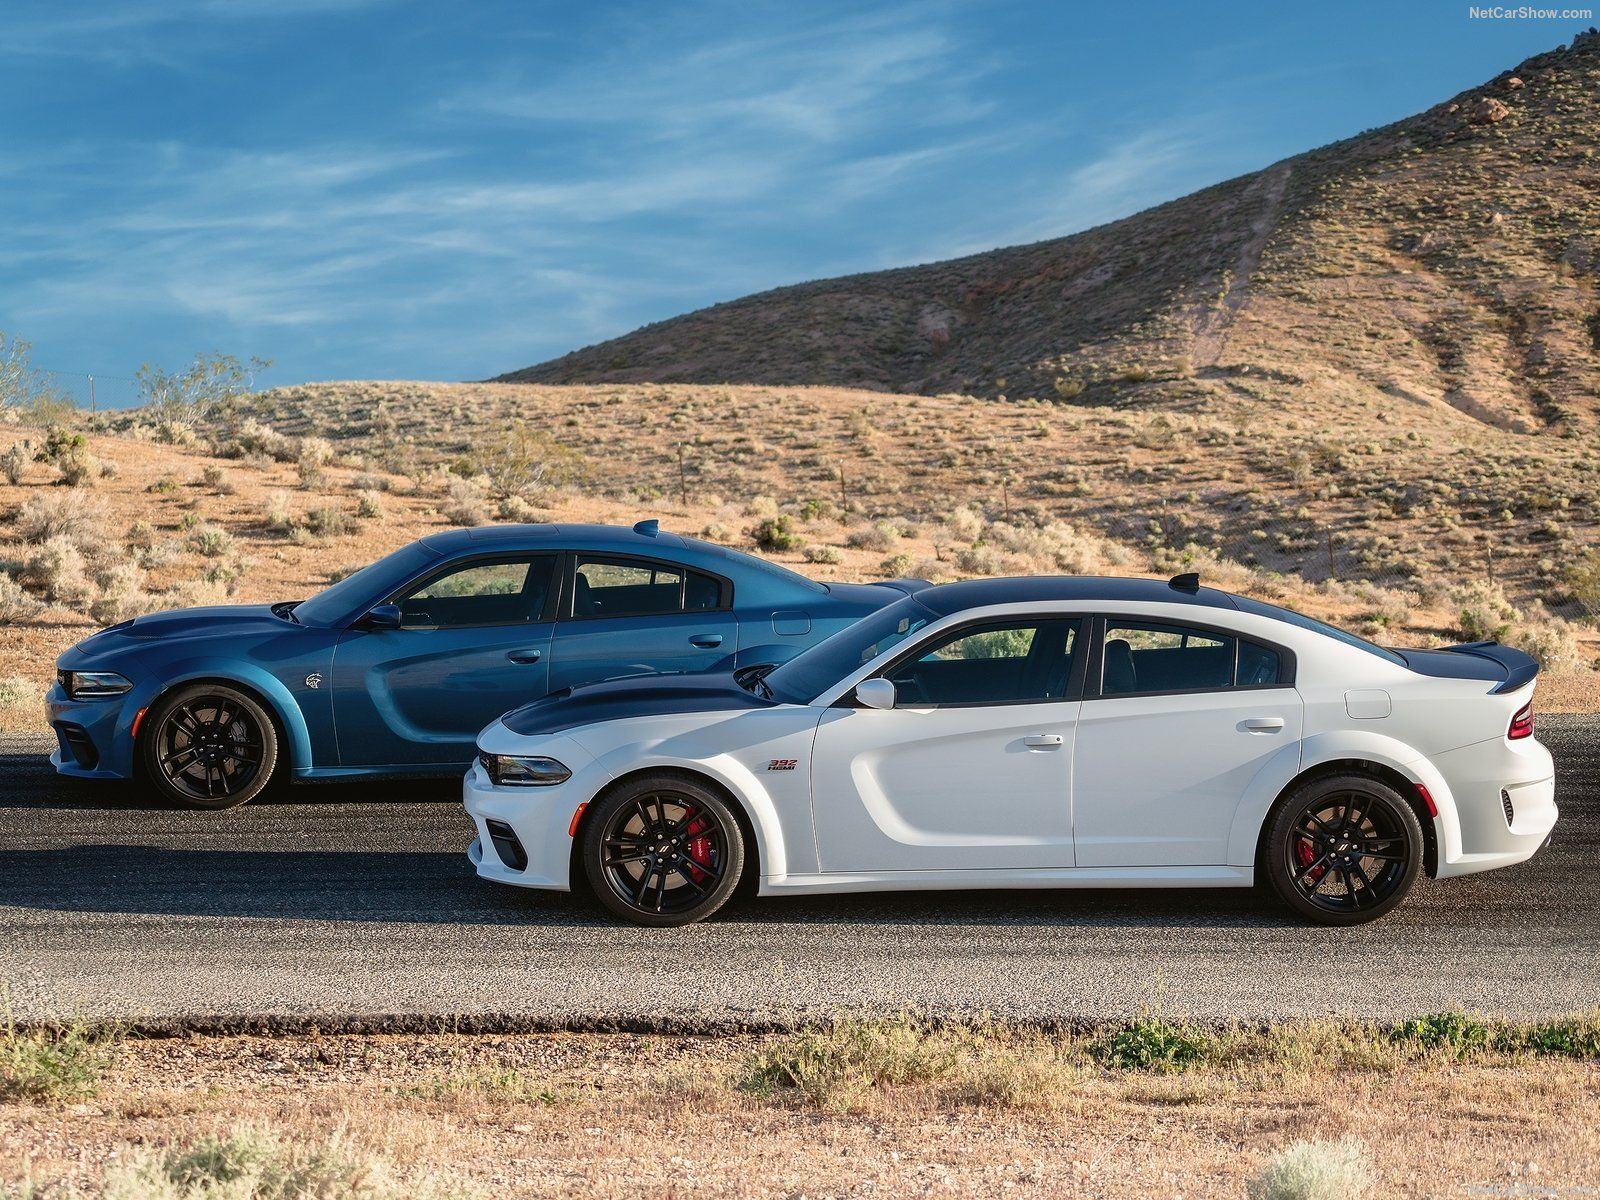 Dodge Charger Widebody My2020 Dodge Charger Srt Dodge Charger Charger Srt Hellcat